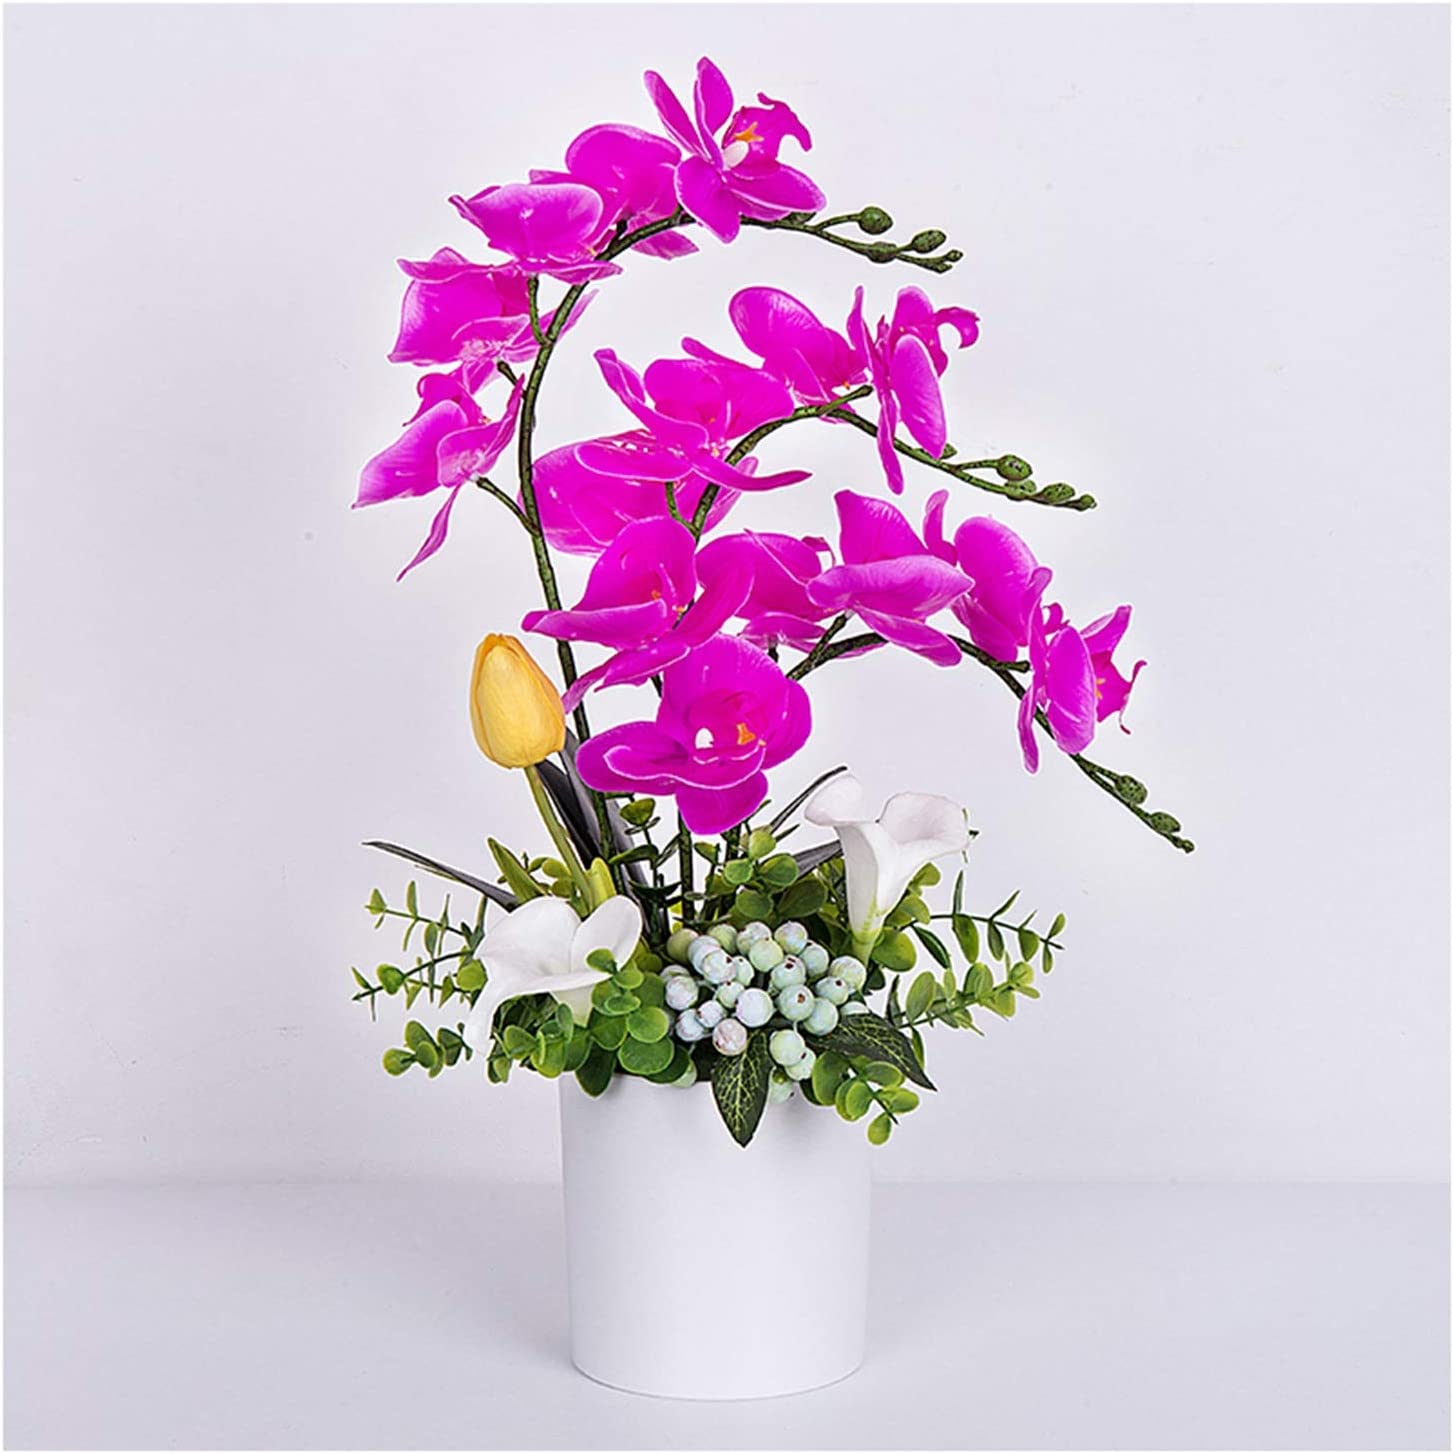 Artificial Flowers Butterfly Max 50% OFF Orchids Artif Lifelike - At the price of surprise